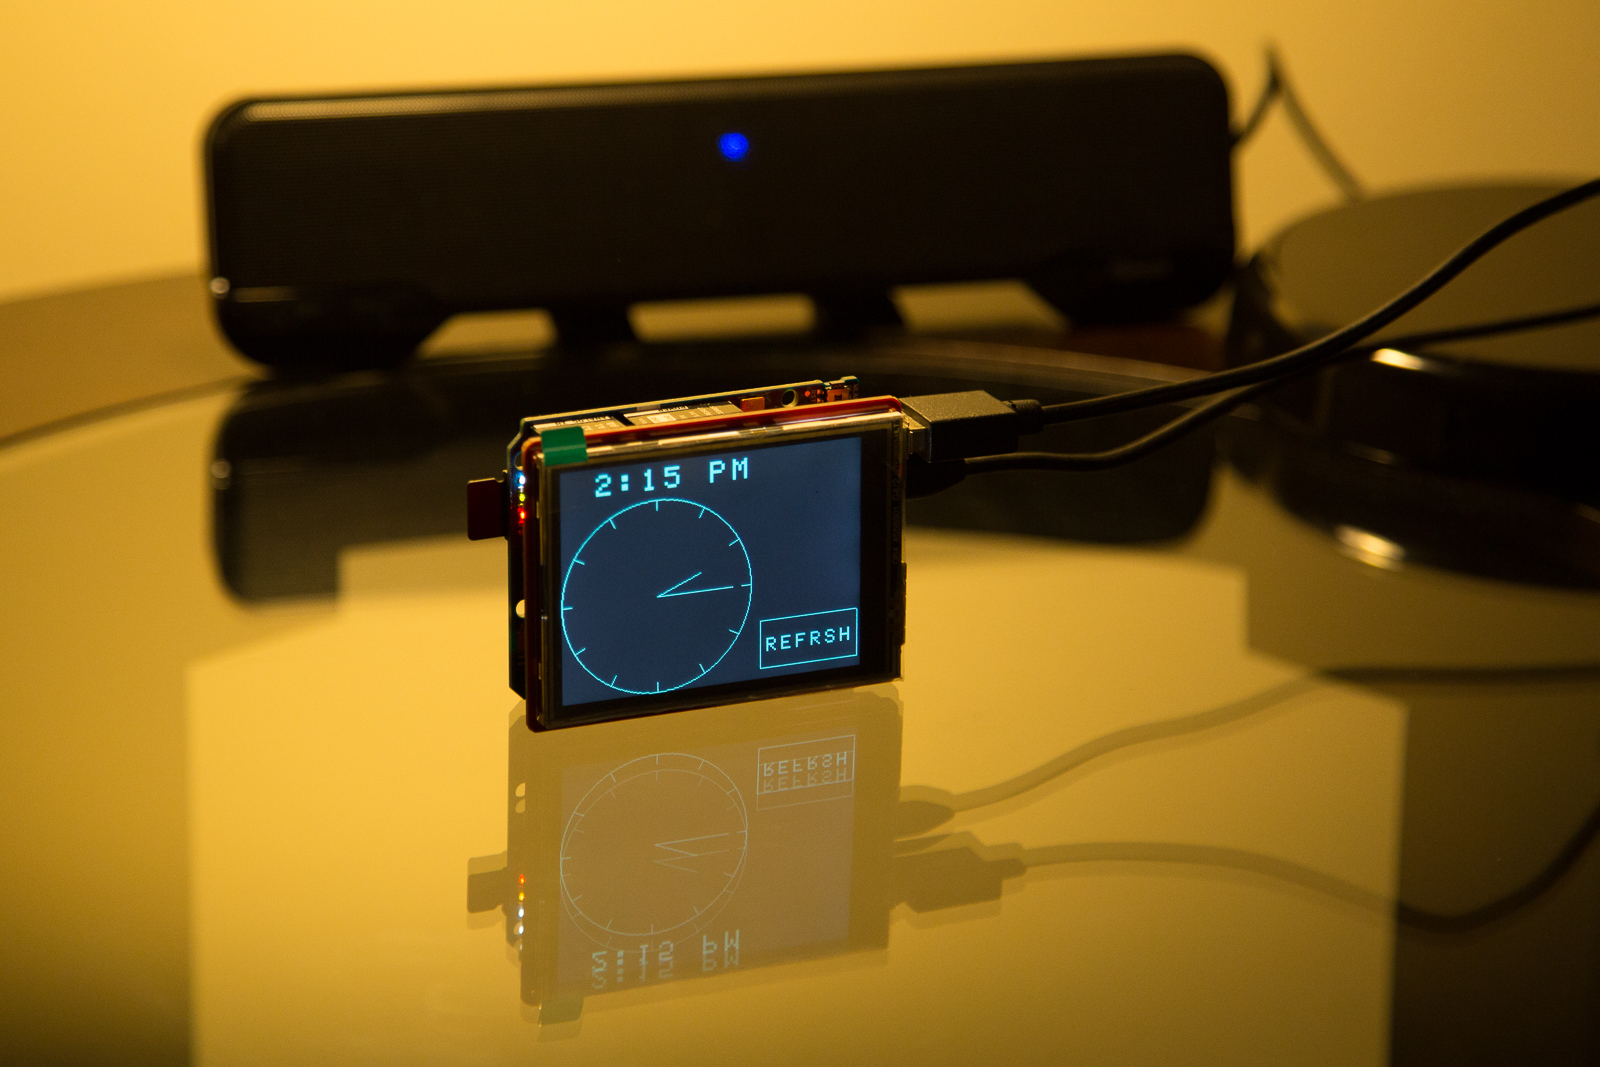 S M A R T  Alarm Clock | Make: